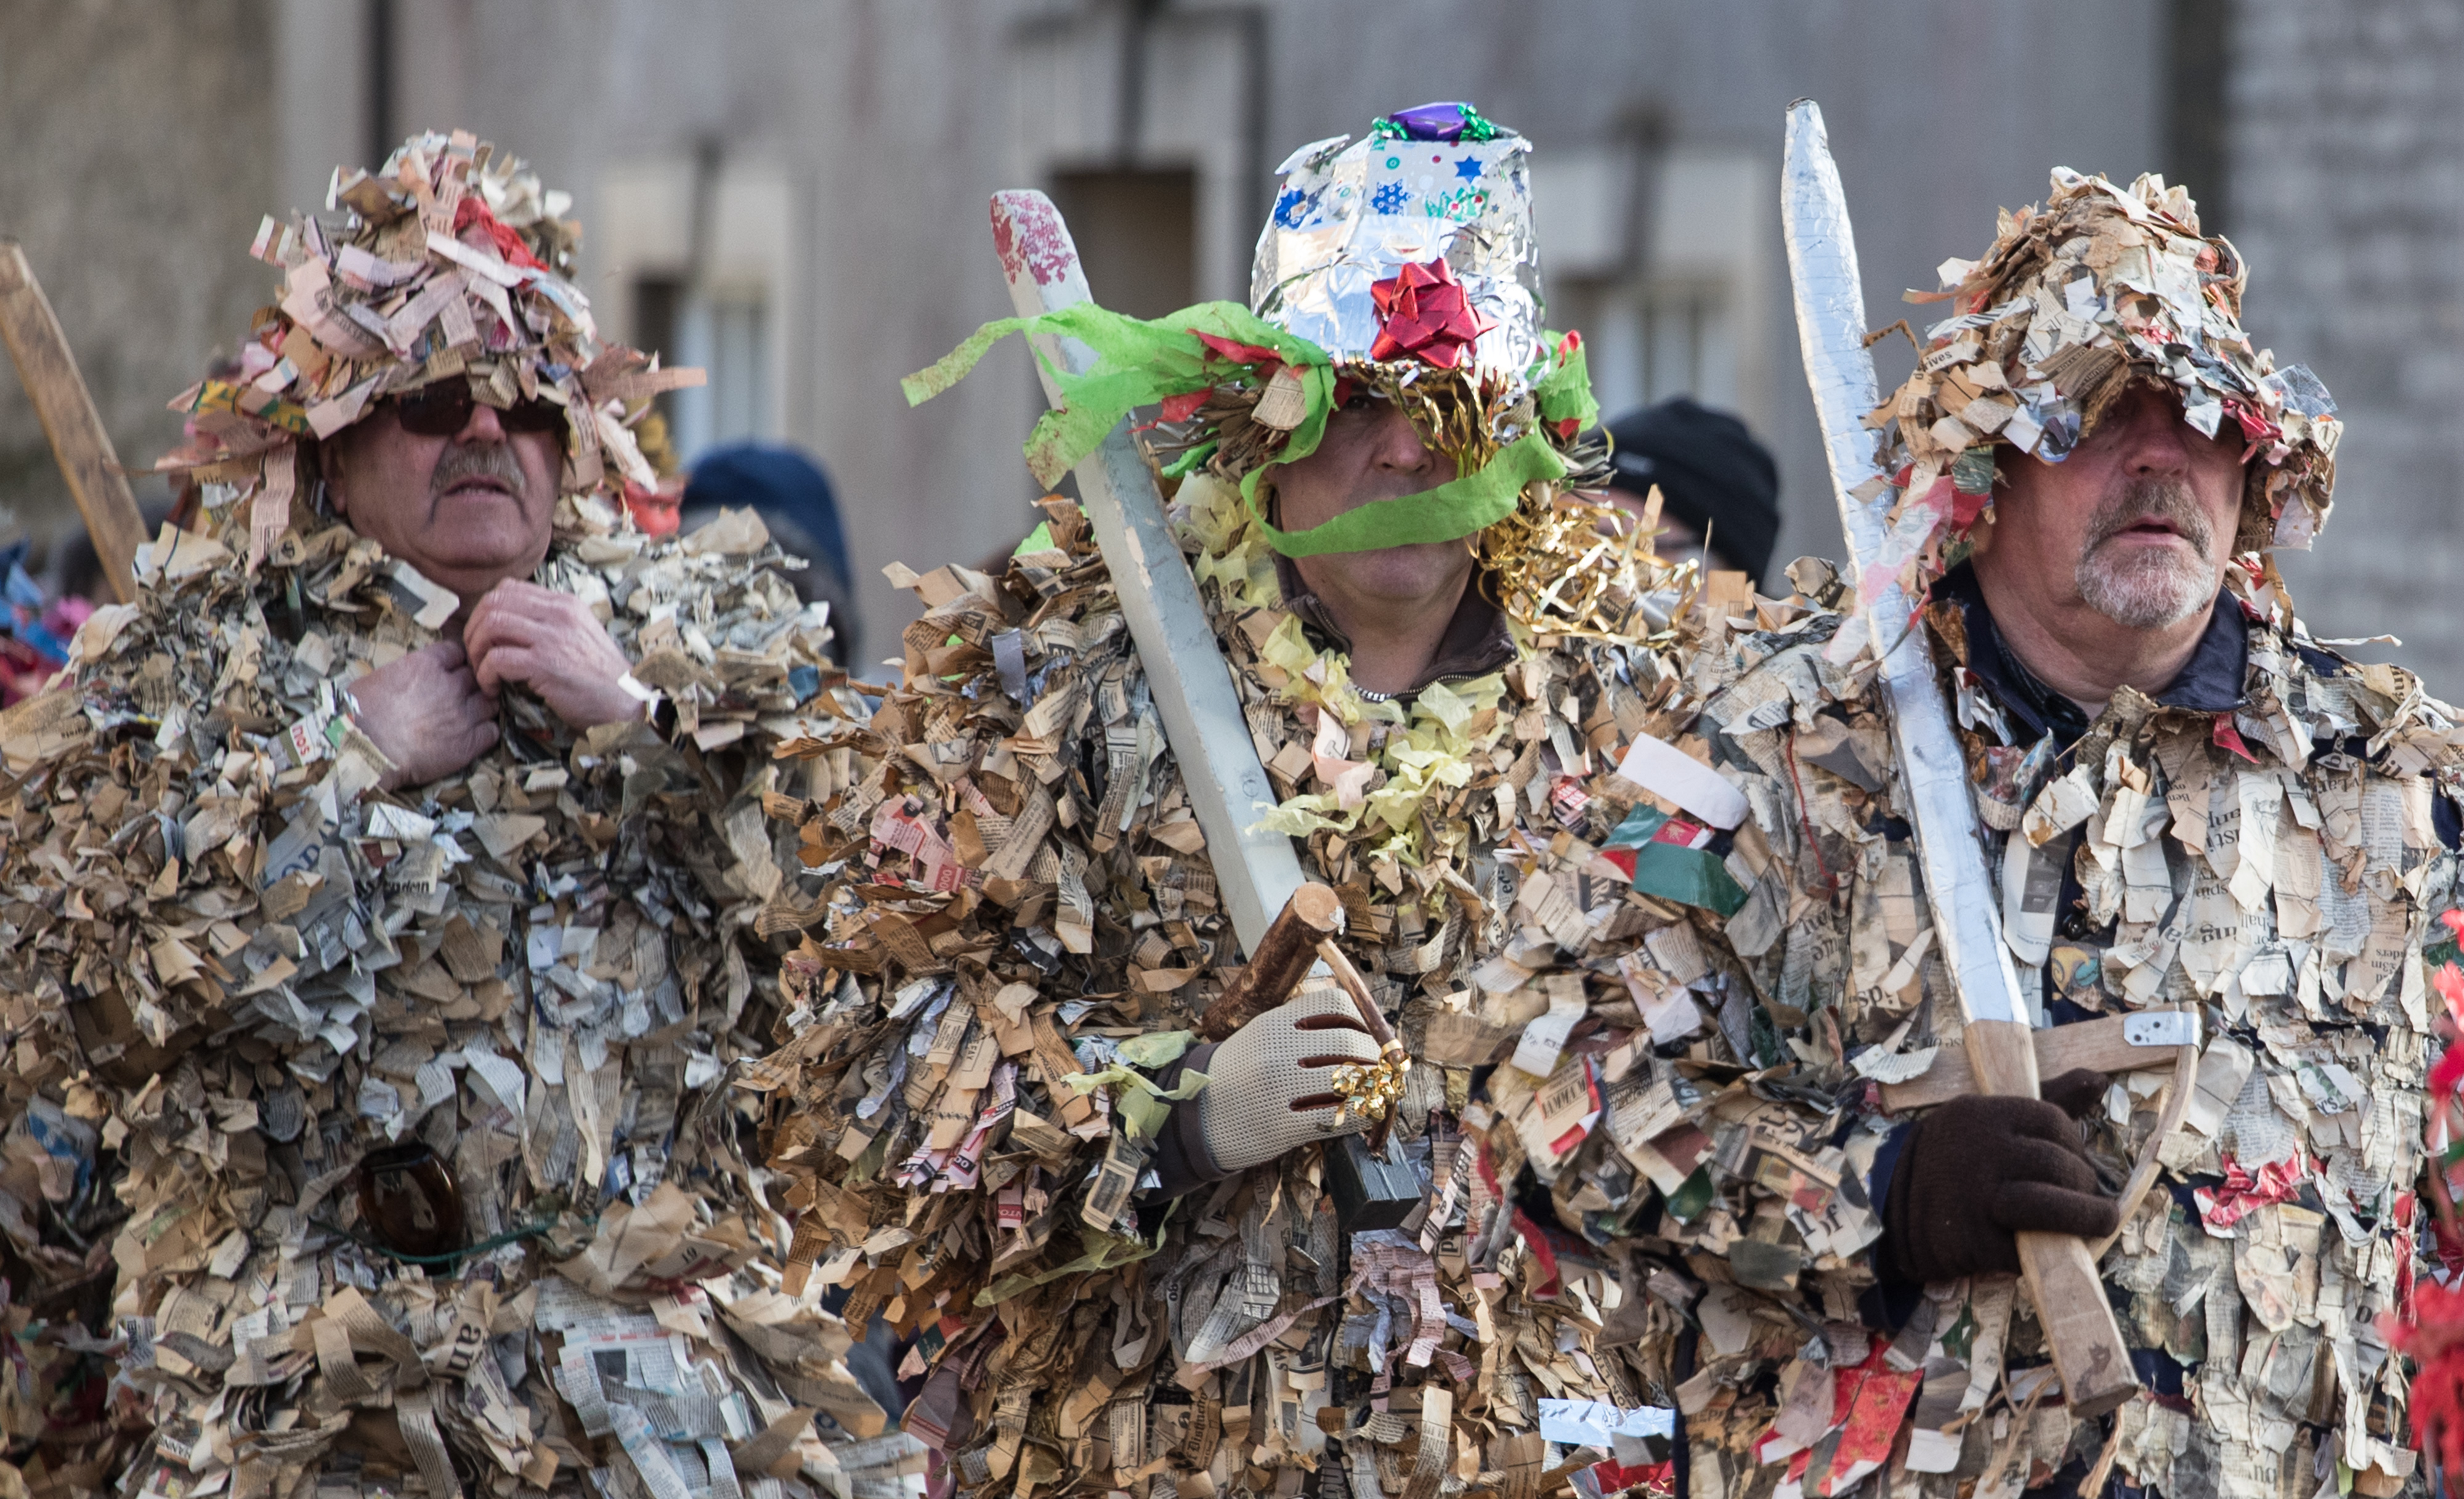 The Traditional Marshfield Mummers Is Performed On Boxing Day